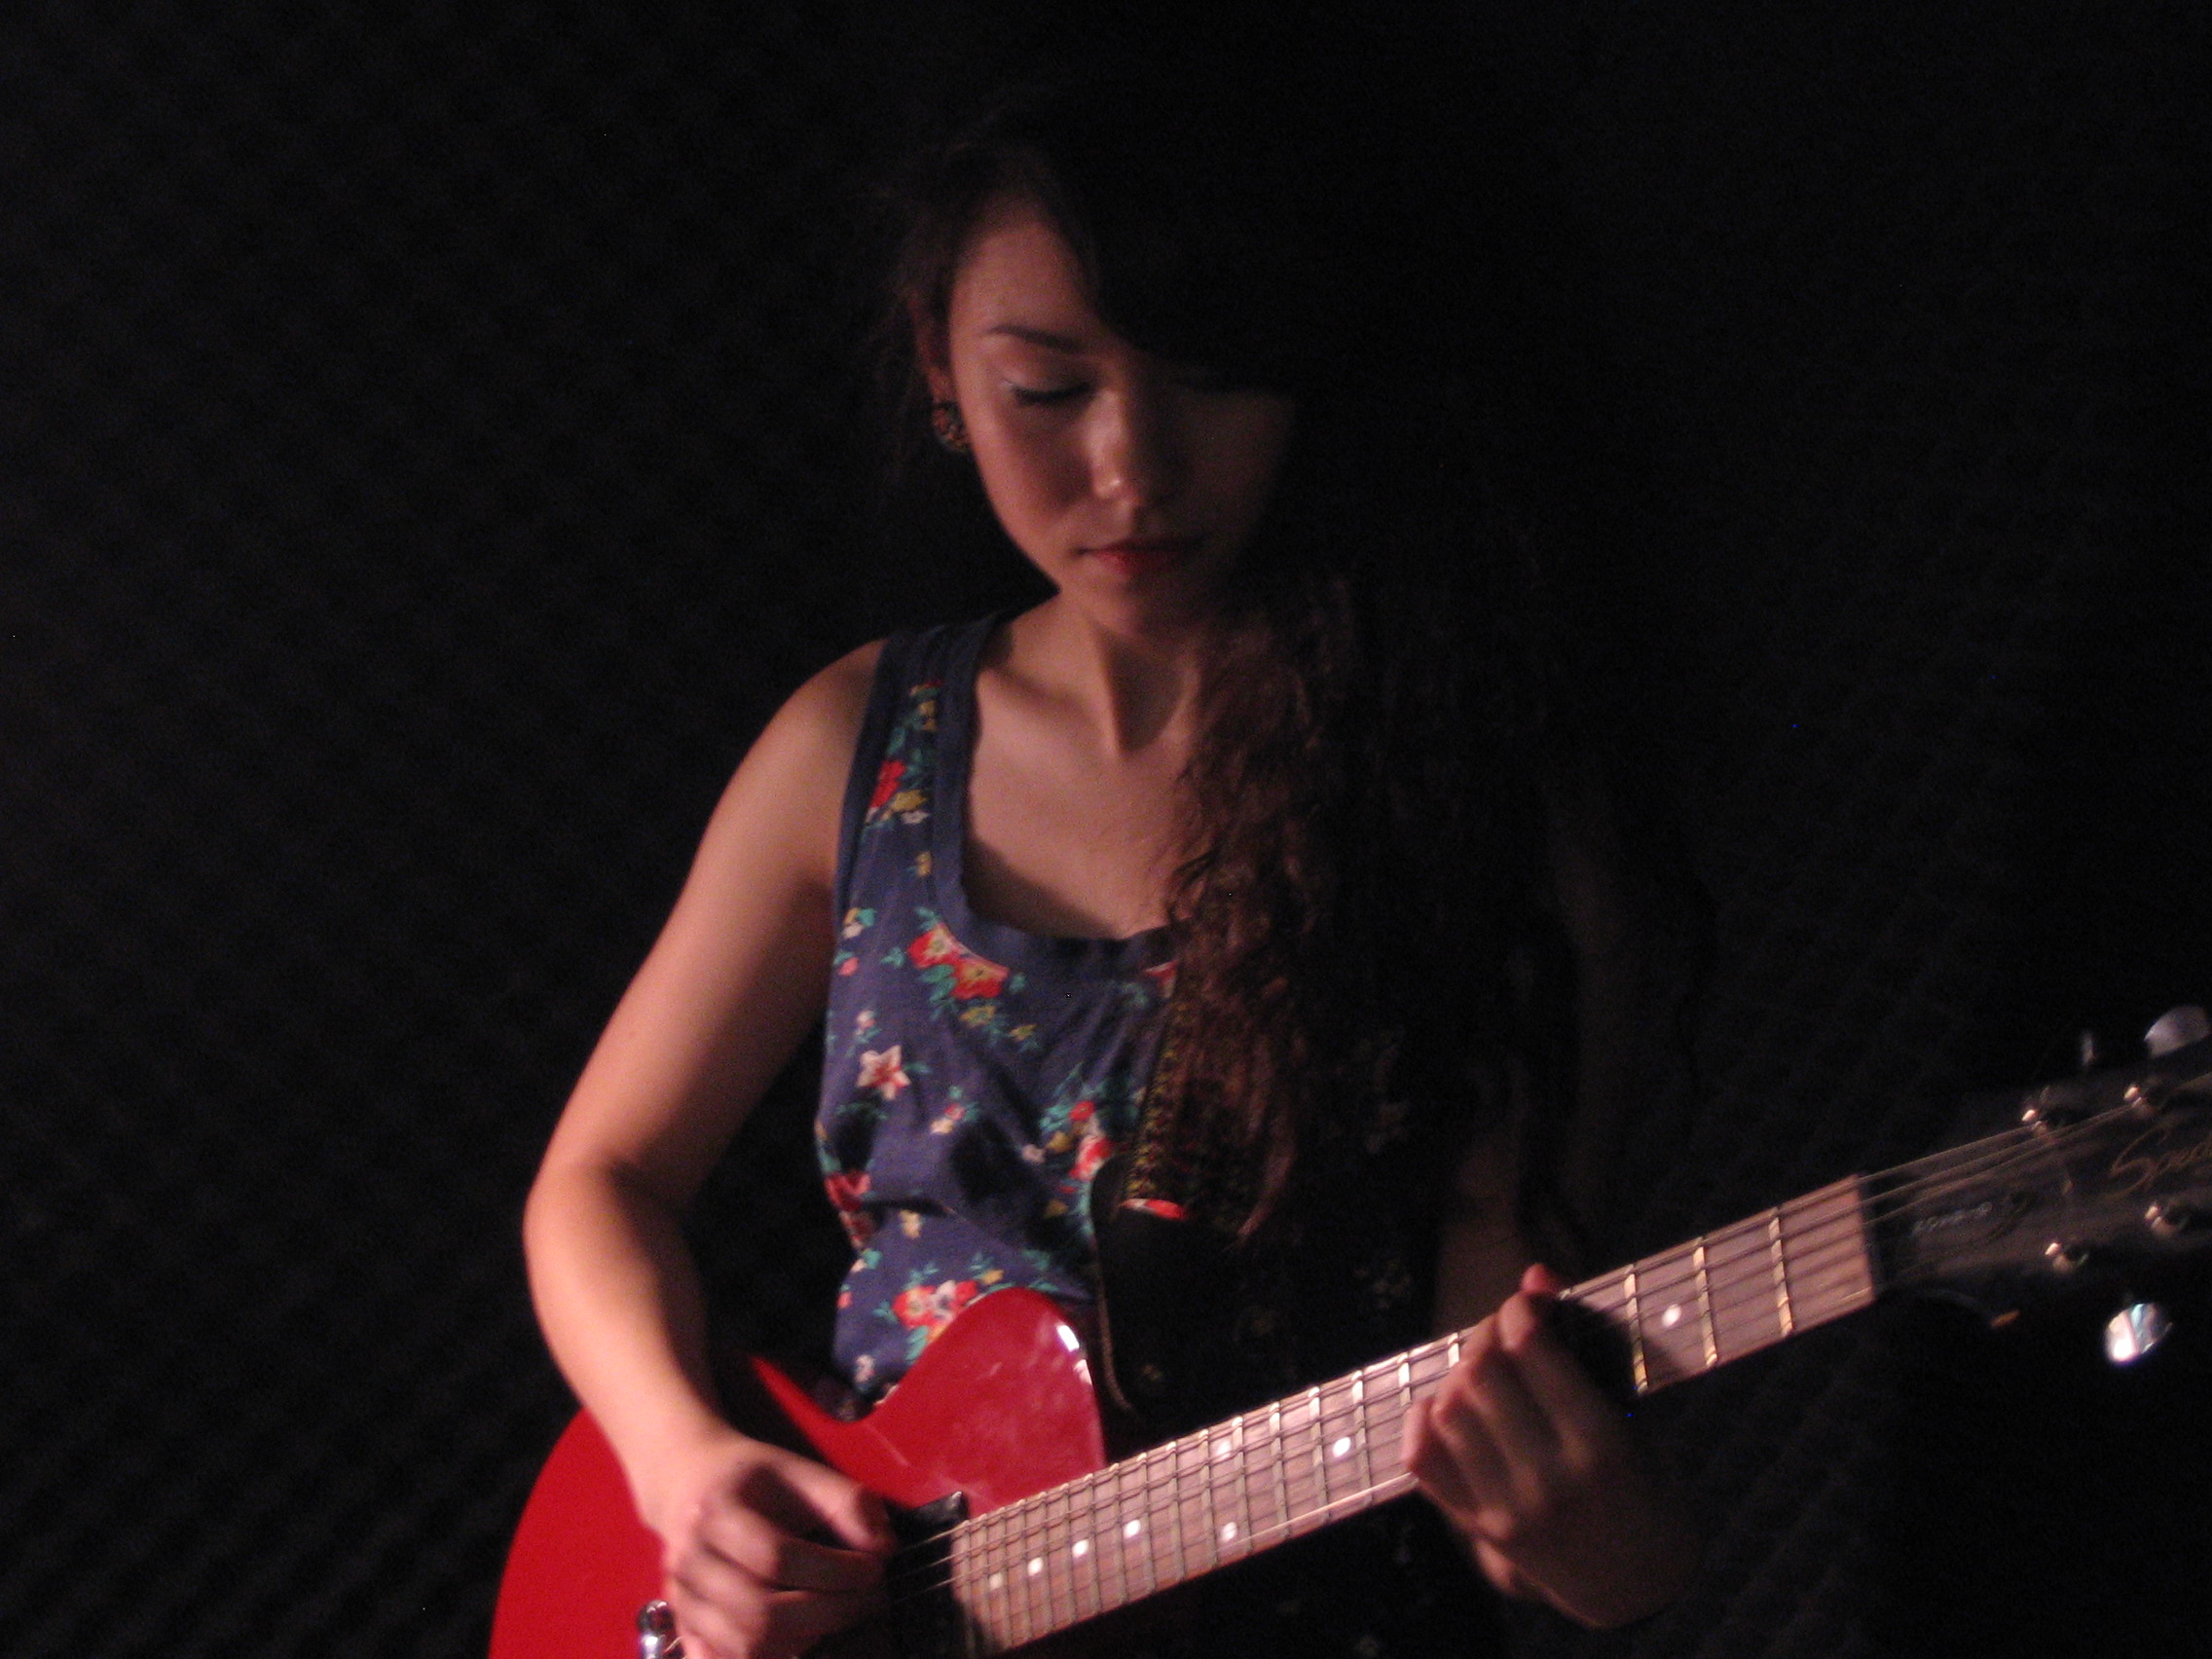 Mree: The Girl with the Red Guitar - Live on Echoes